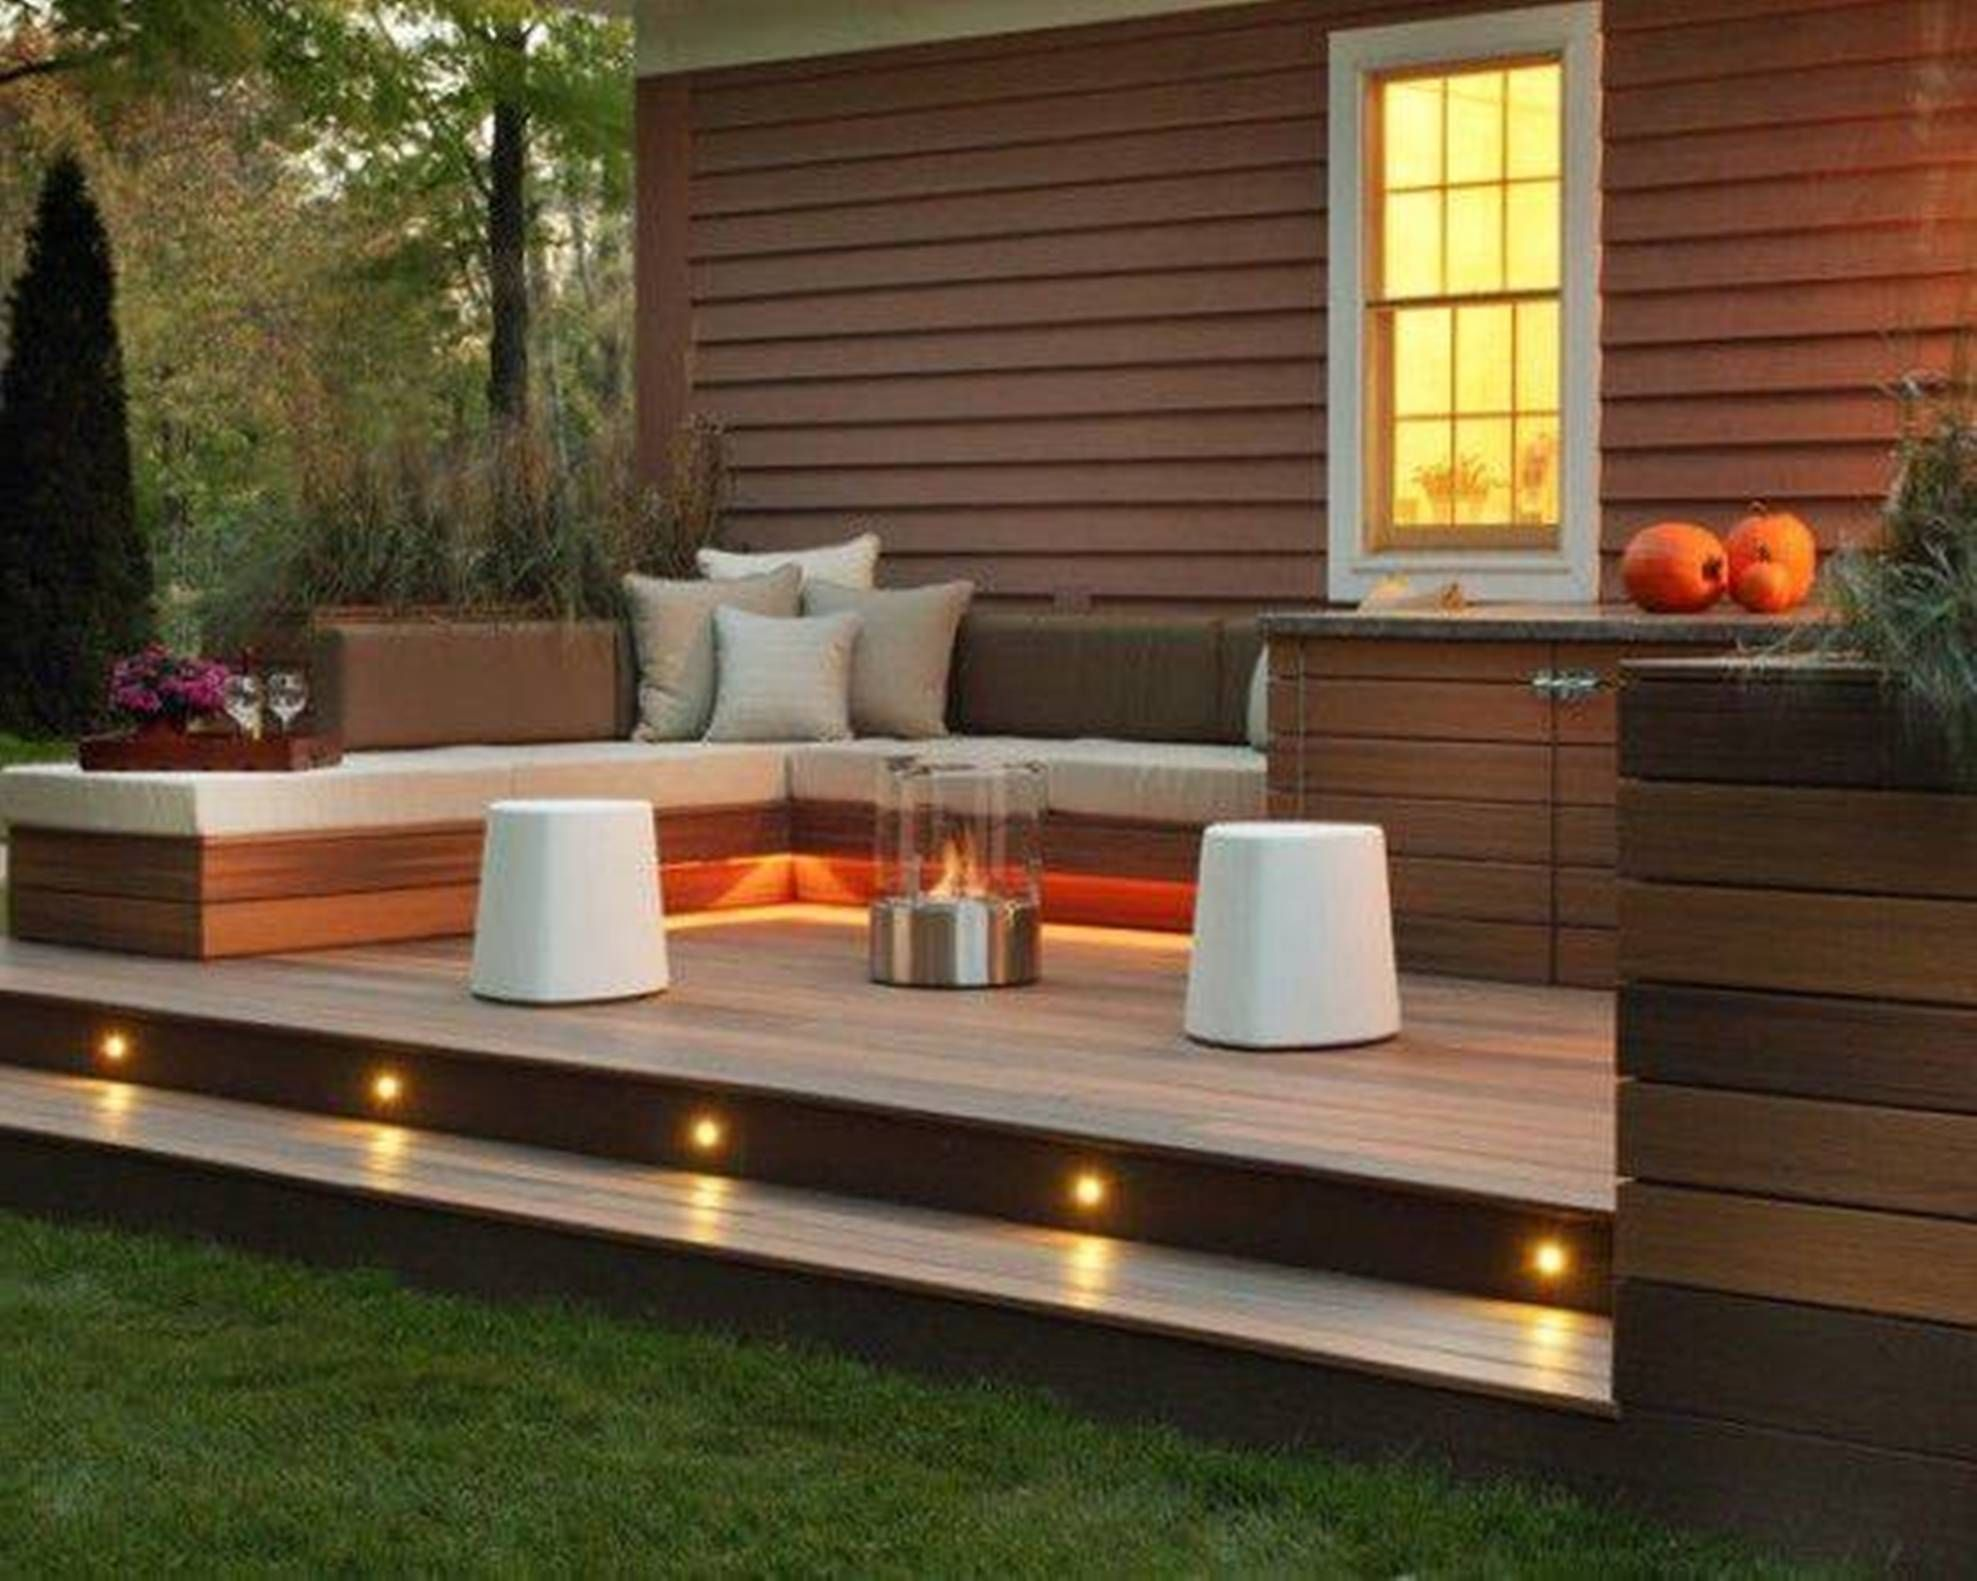 Patio Deck Design Ideas 77 cool backyard deck design ideas Landscaping And Outdoor Building Great Small Backyard Deck Designs Small Backyard Deck Designs With